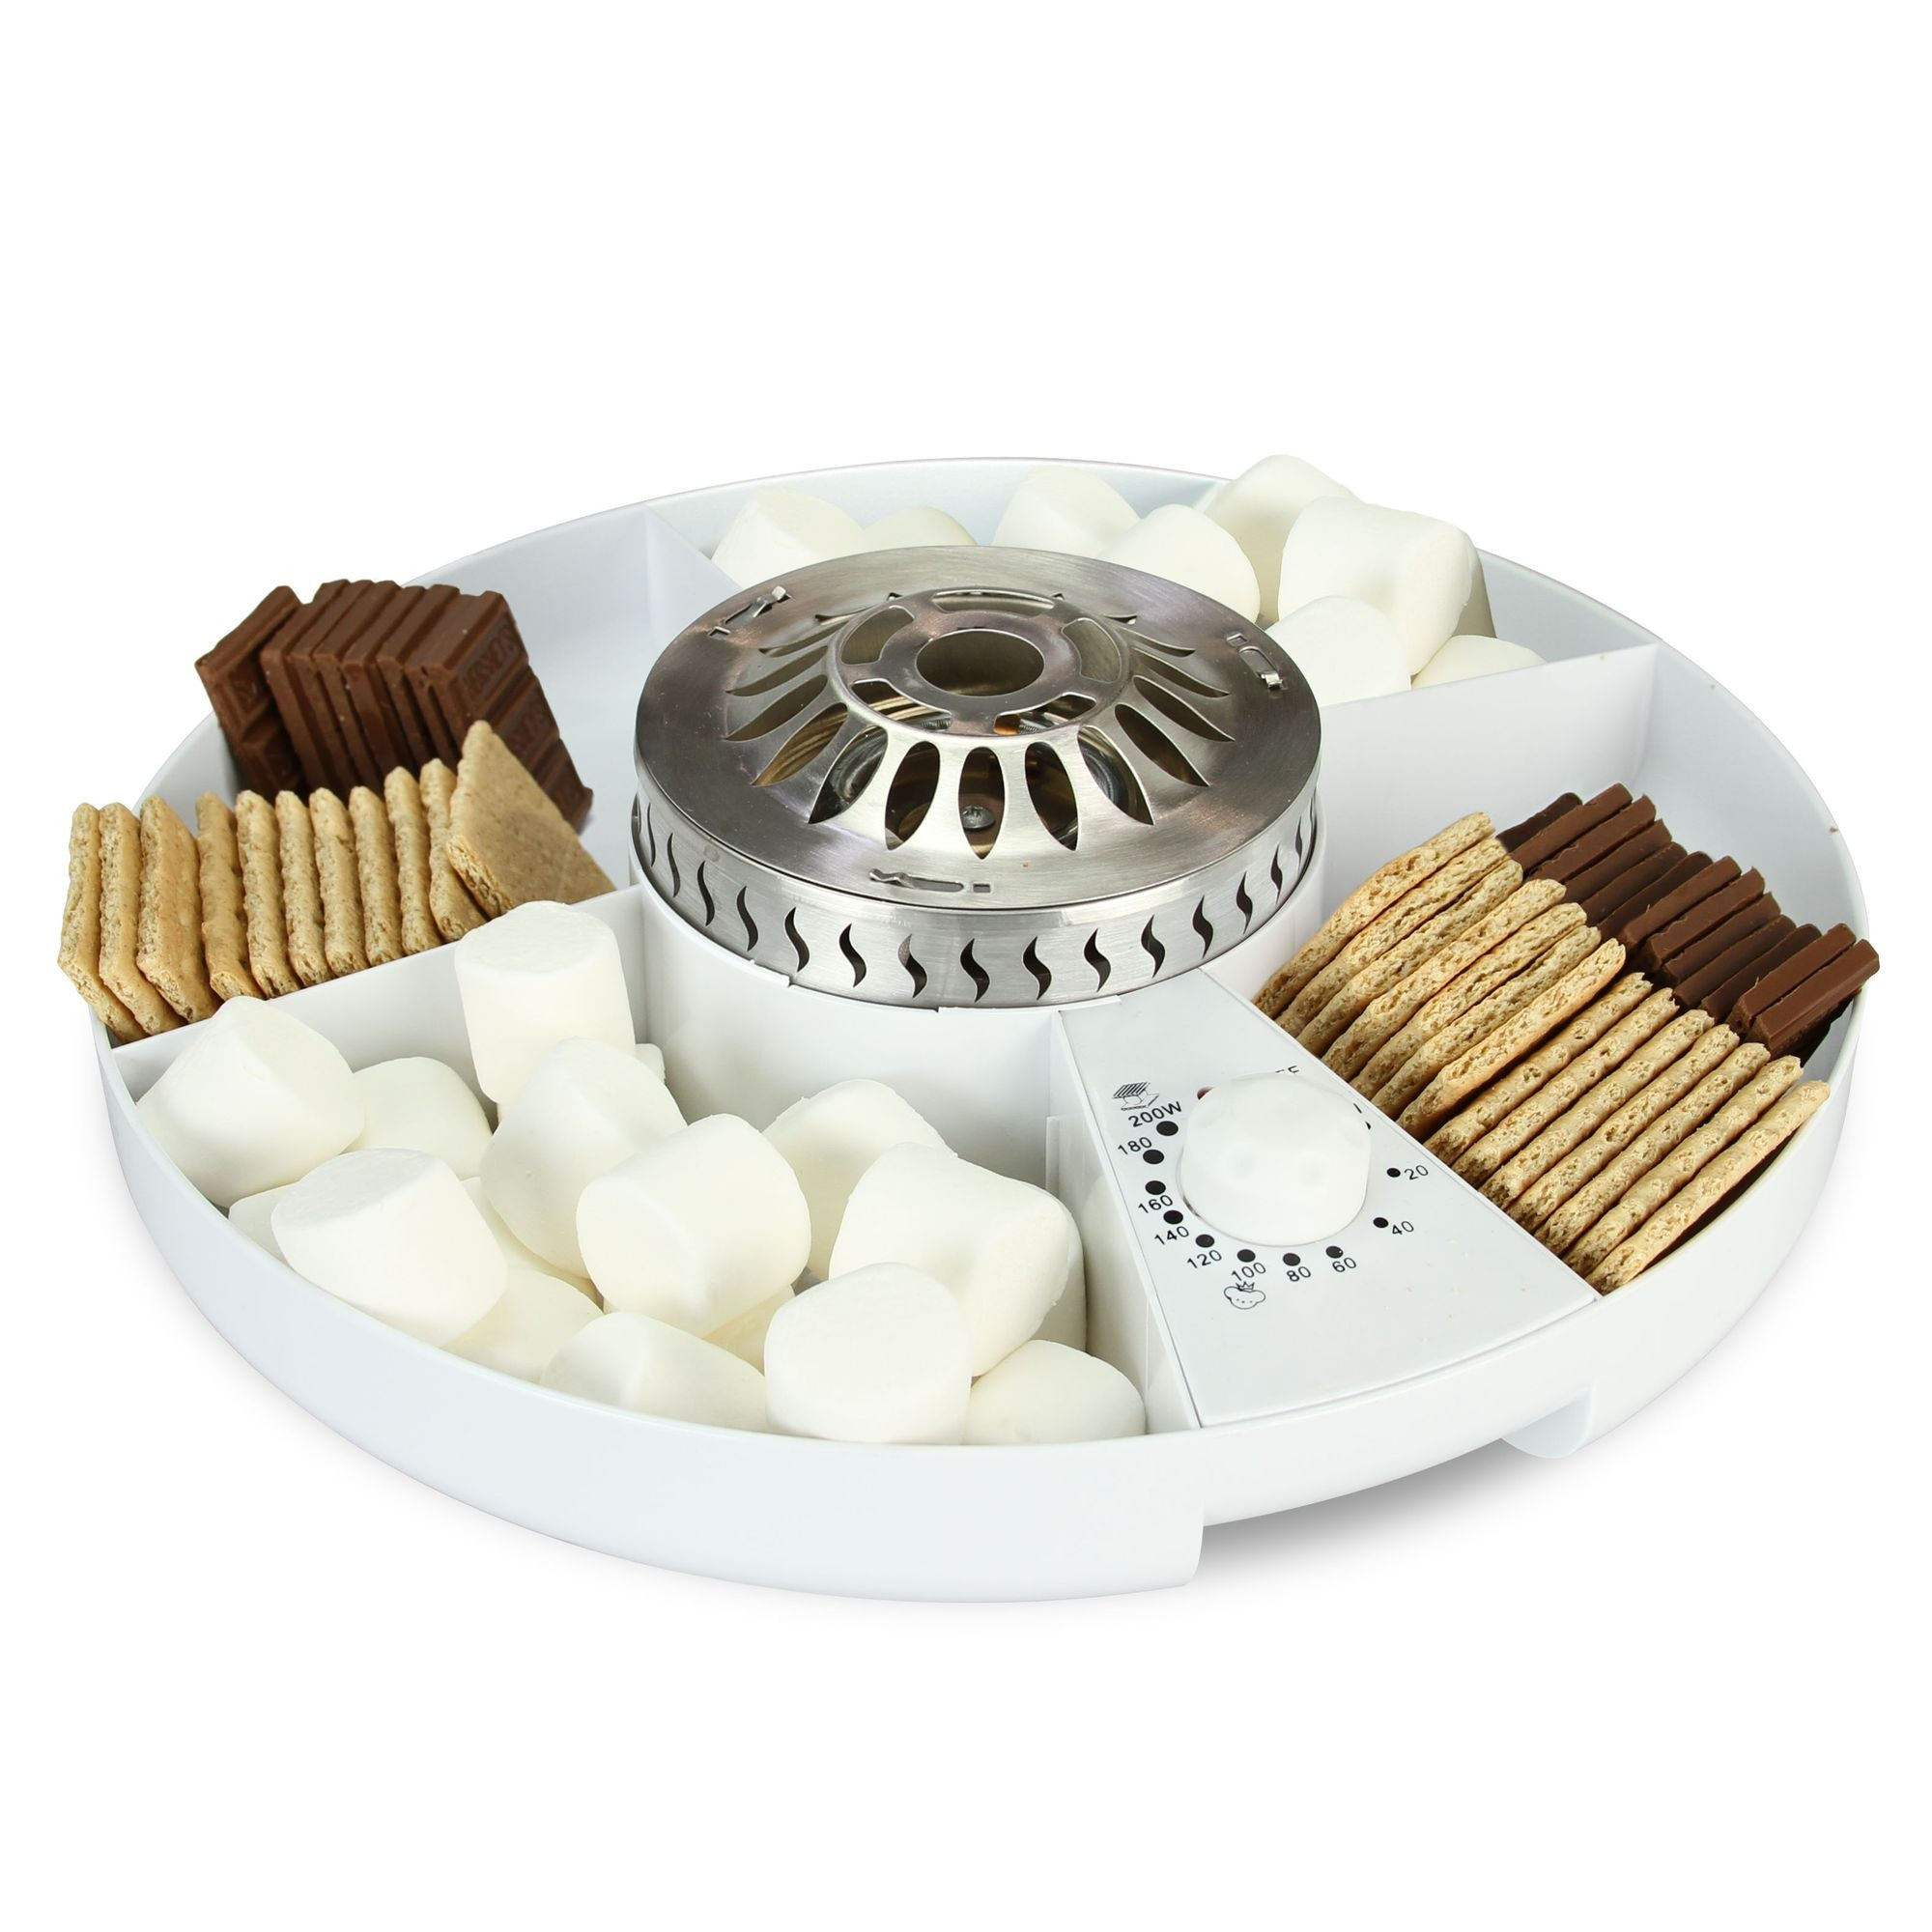 3-in-1 S'mores Maker